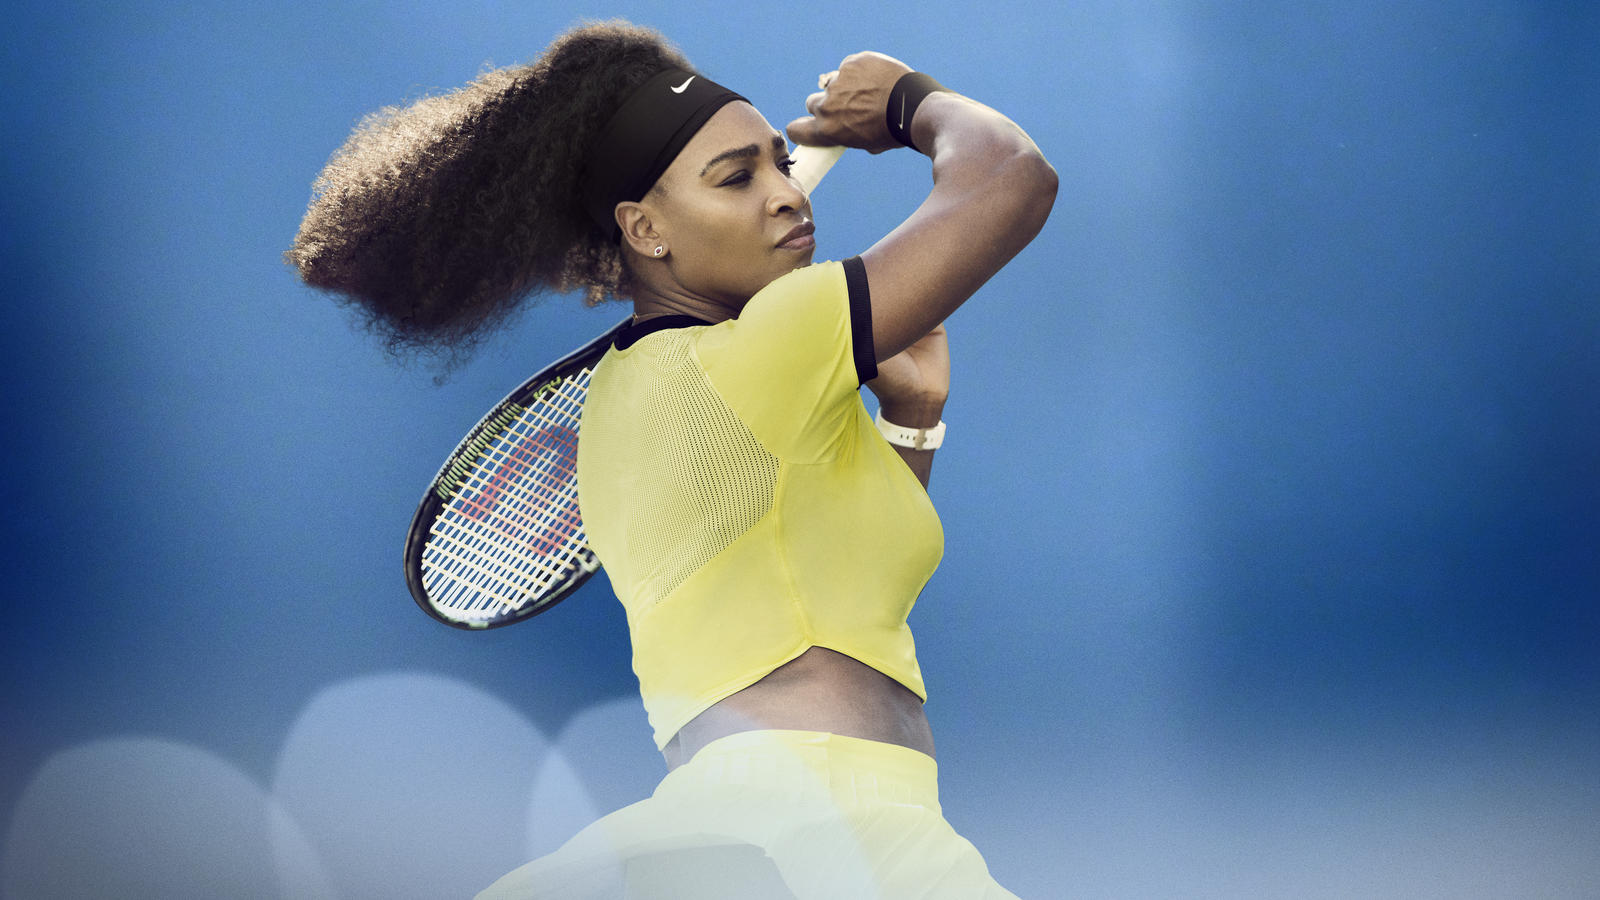 Nikecourt_serena_williams_3_hd_1600